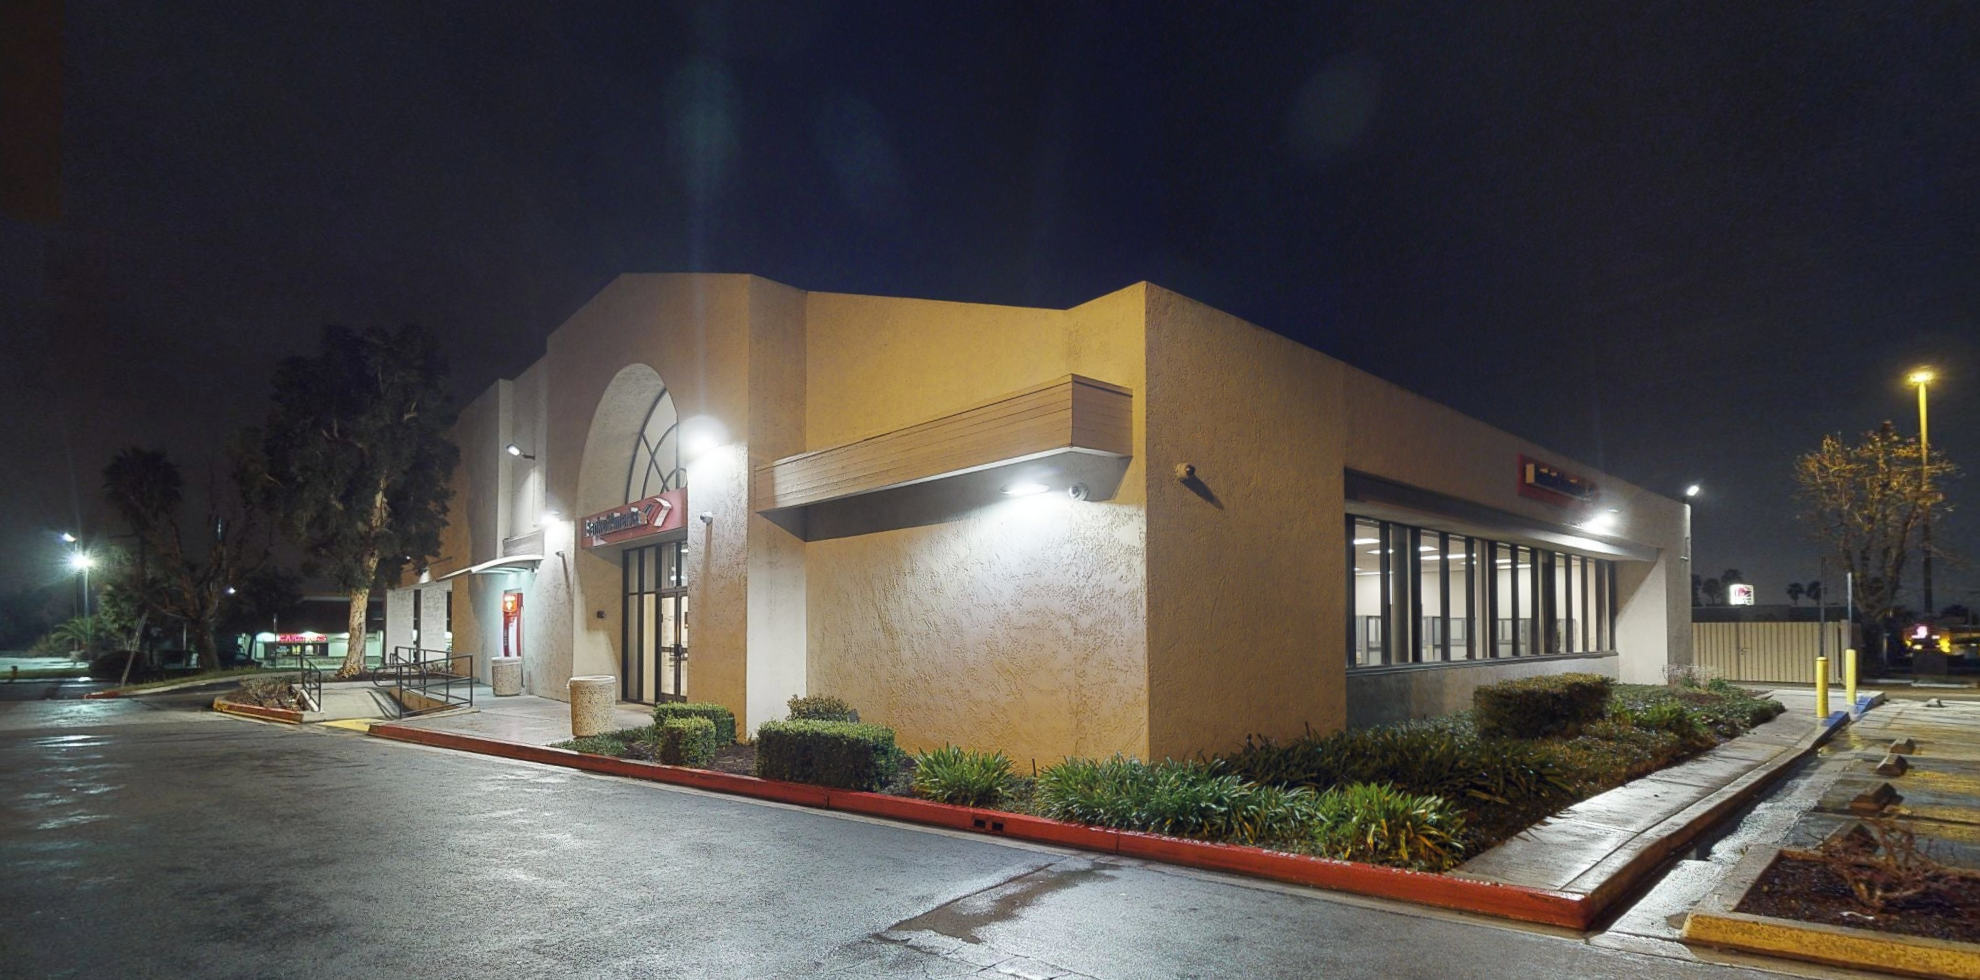 Bank of America financial center with drive-thru ATM | 12350 Perris Blvd, Moreno Valley, CA 92557